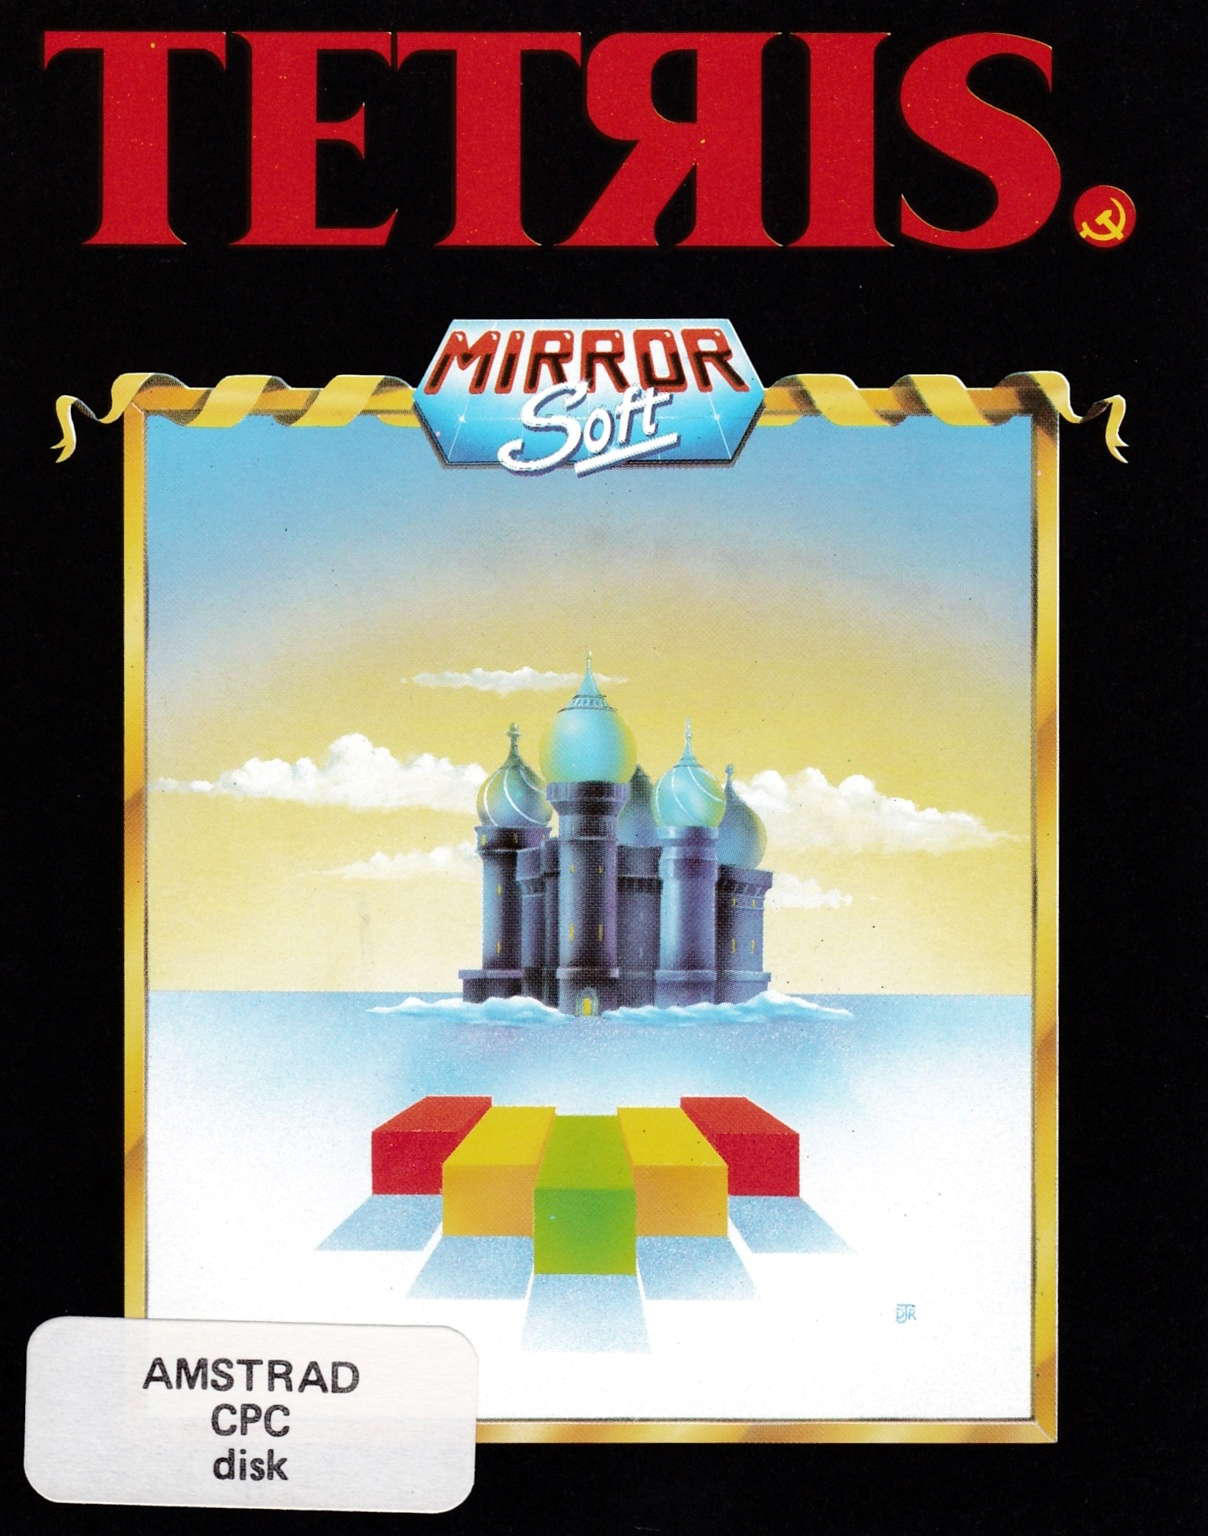 cover of the Amstrad CPC game Tetris  by GameBase CPC